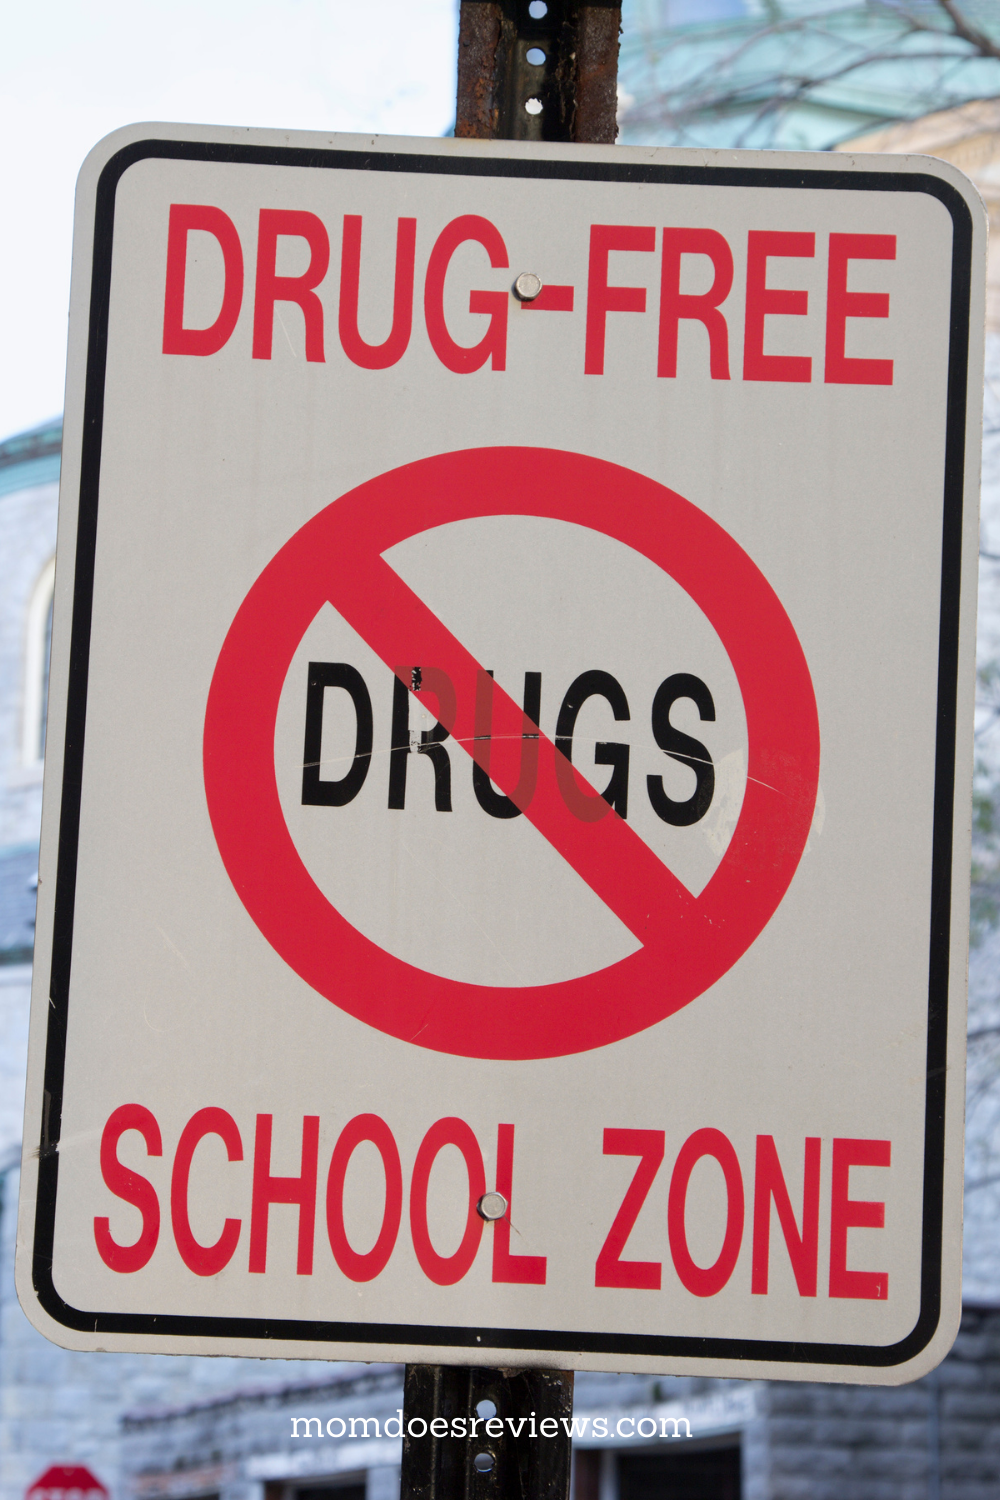 Tips for Parents on Keeping Your Children Drug-Free